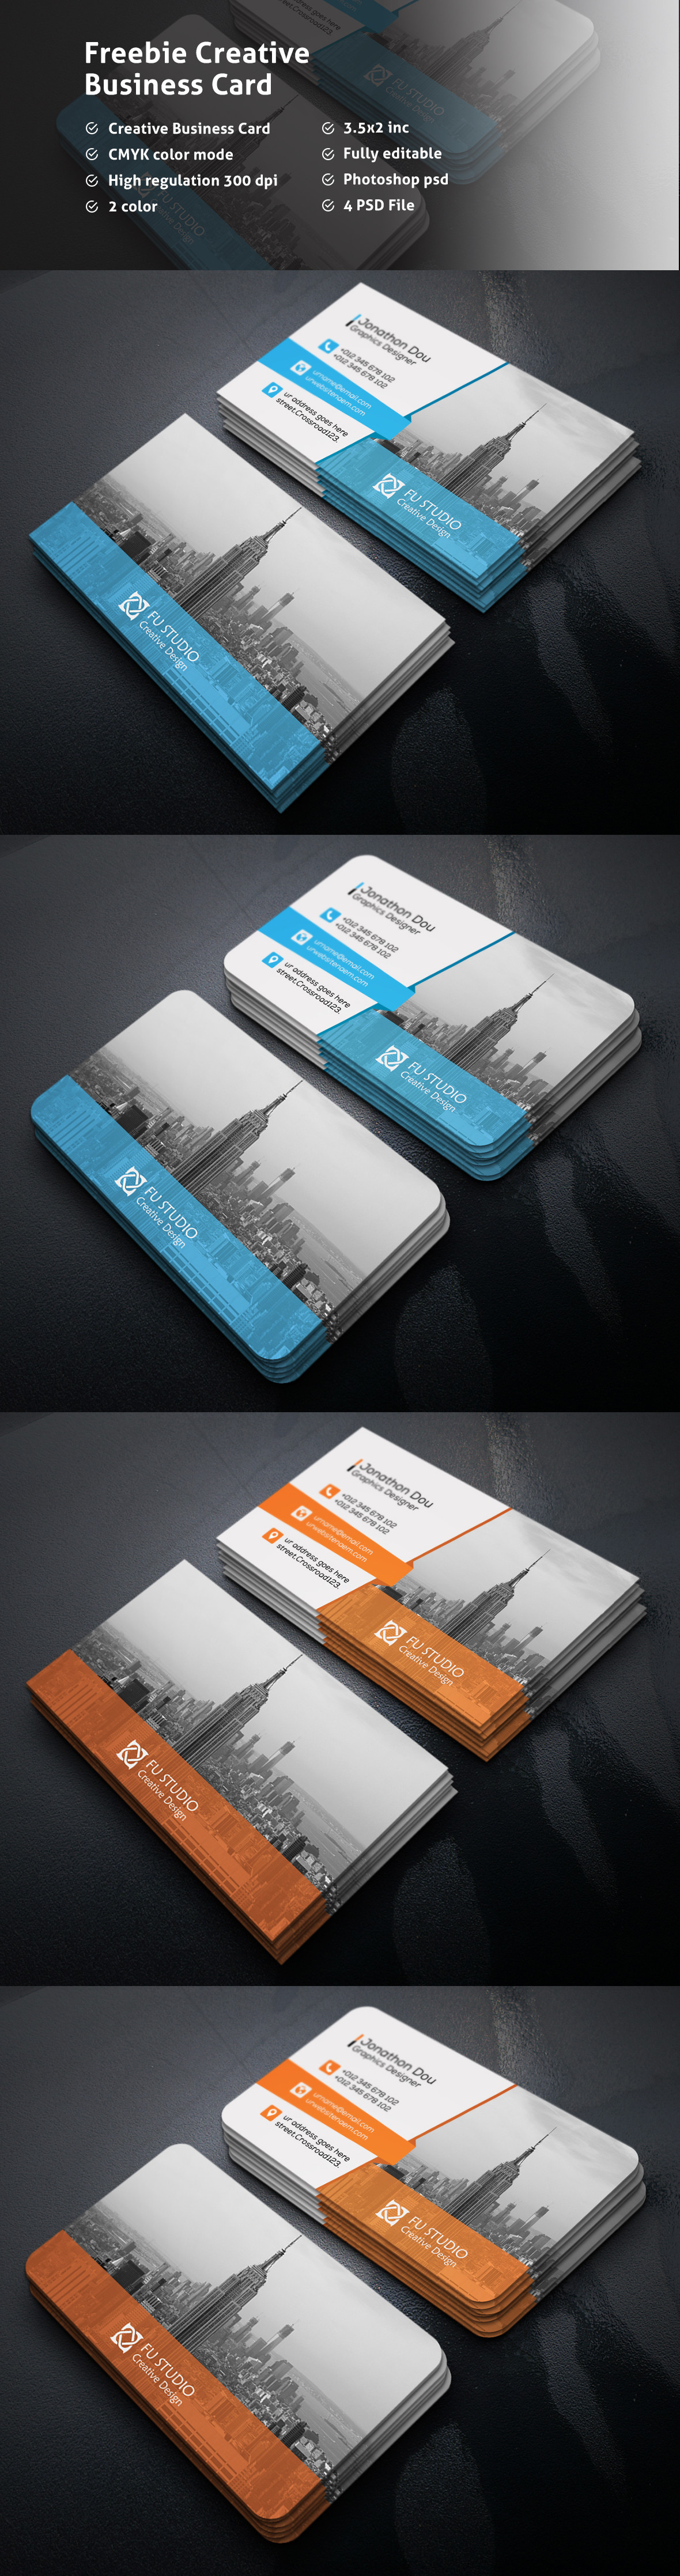 Fantastic business cards psd templates for free stylish blue fantastic business cards psd templates for free stylish blue business card reheart Gallery